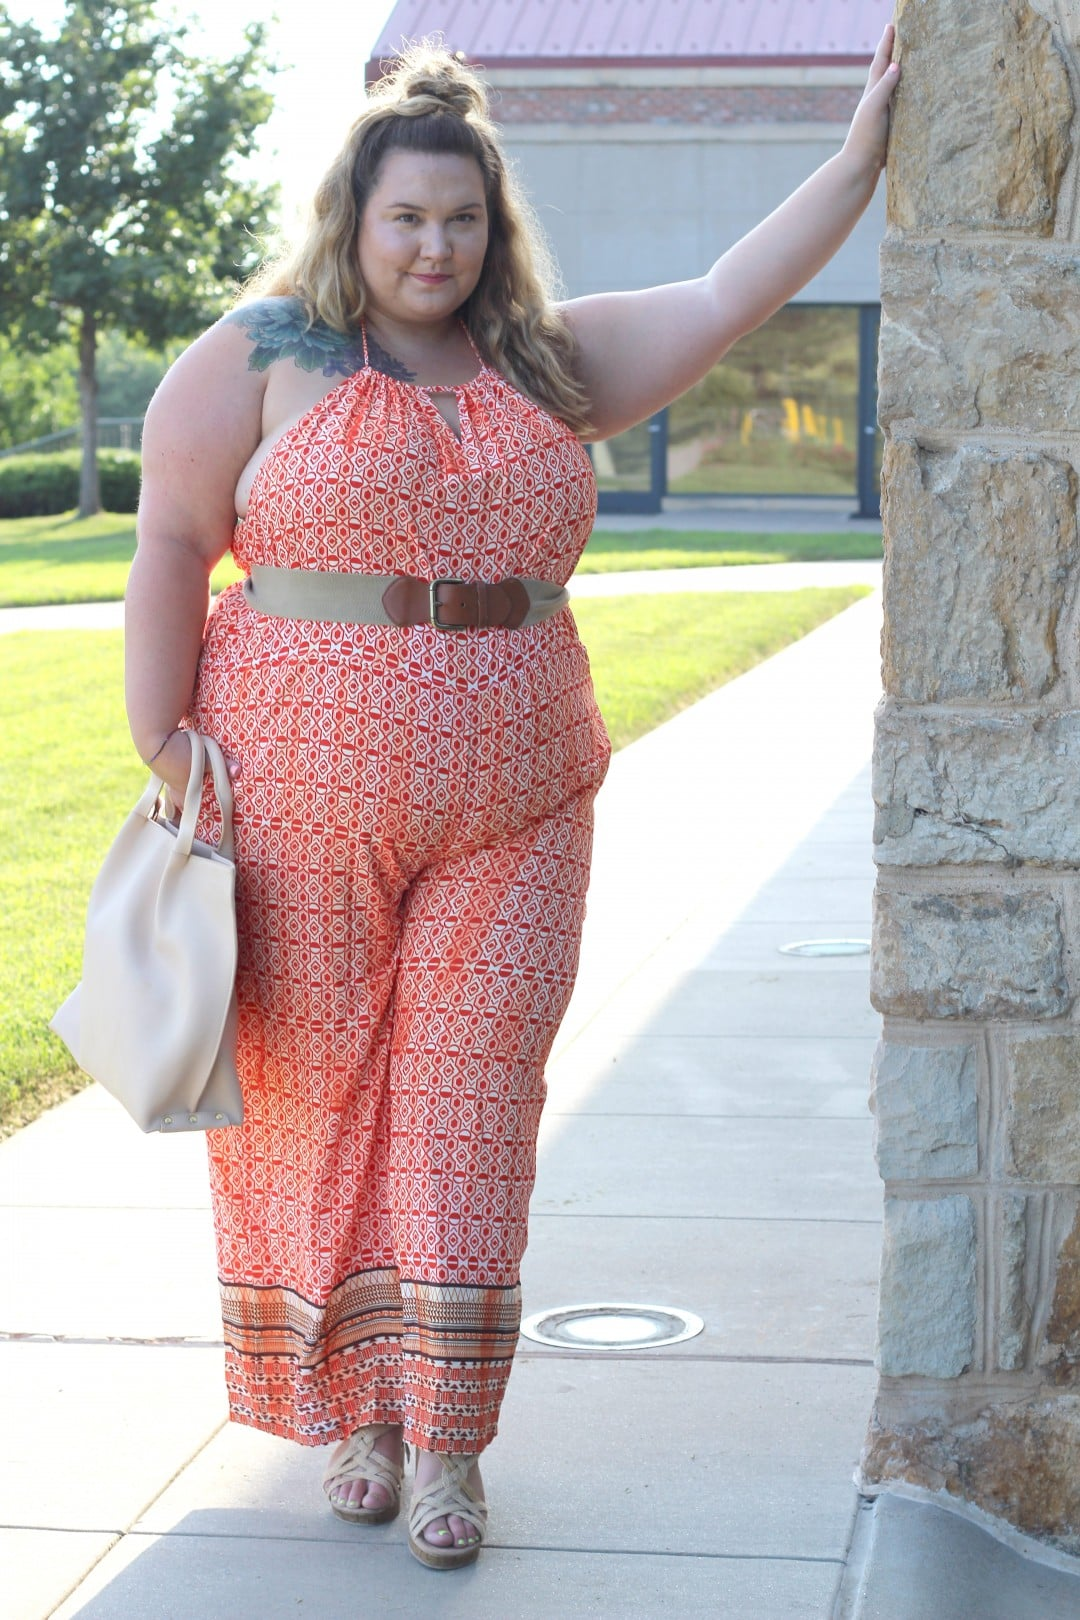 Photos of big women Glam: Fashion, Beauty, Lifestyle, And More